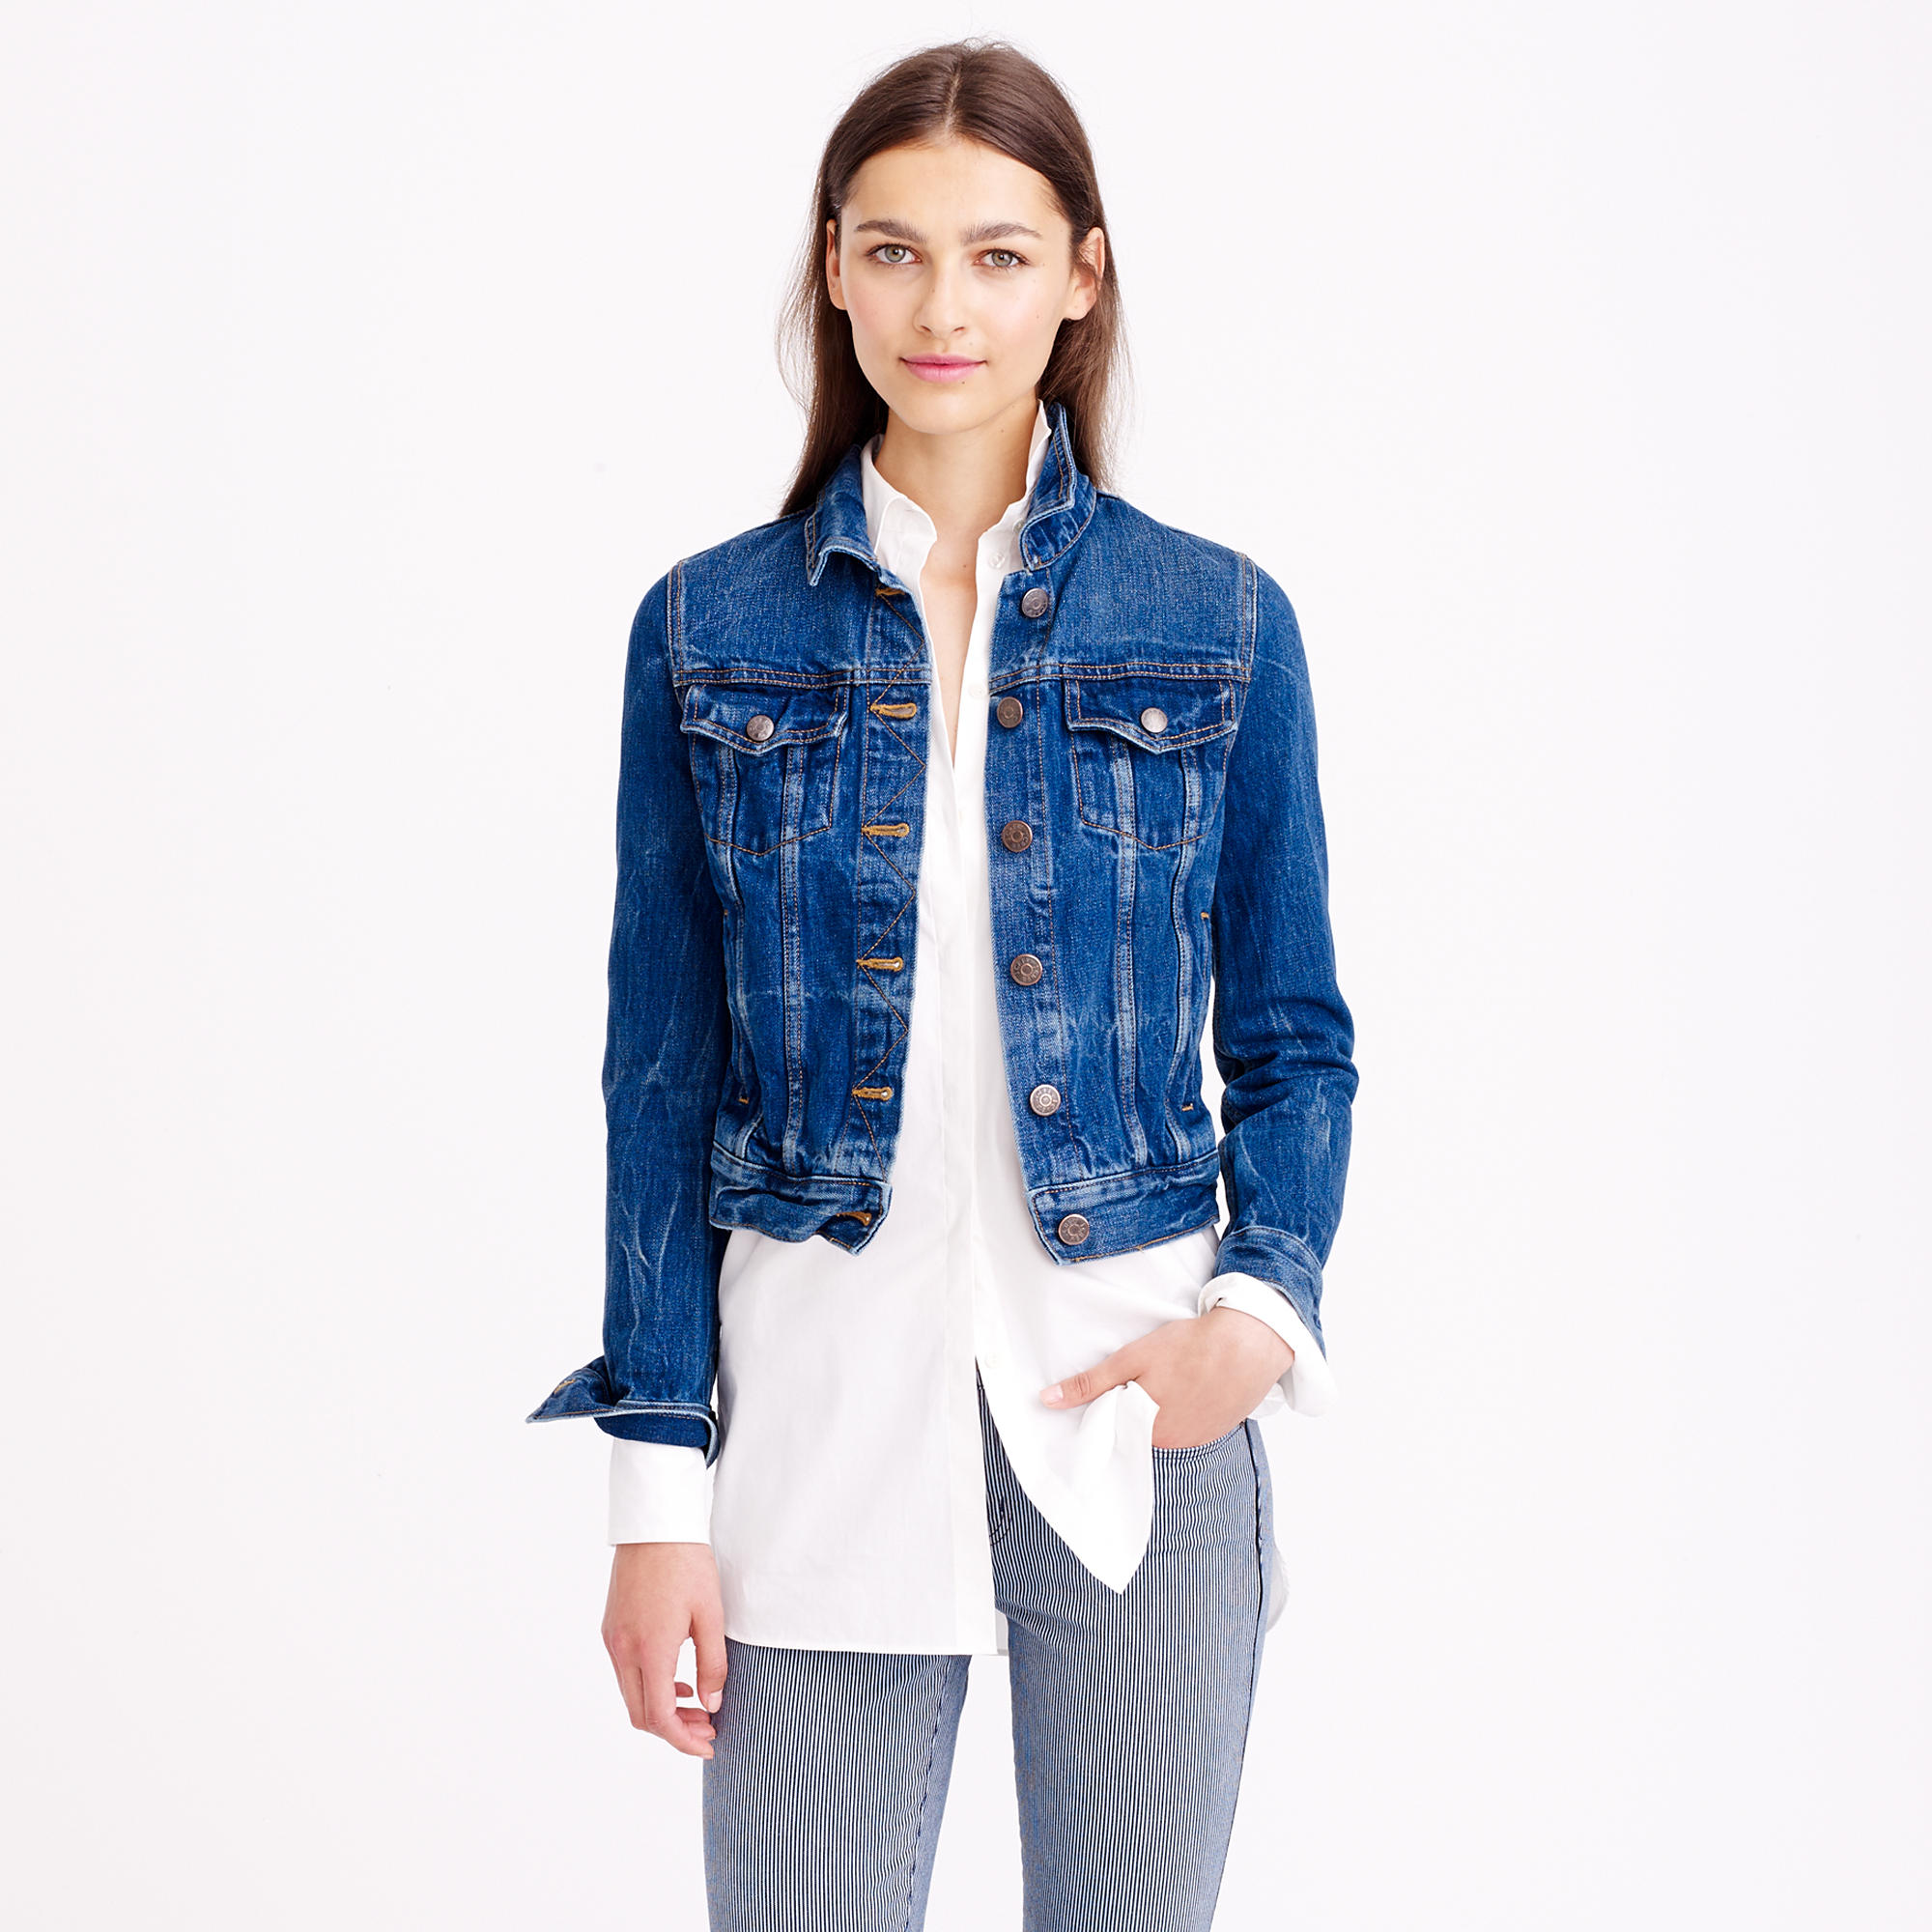 Vintage denim jacket in recycled indigo wash : Women denim | J.Crew